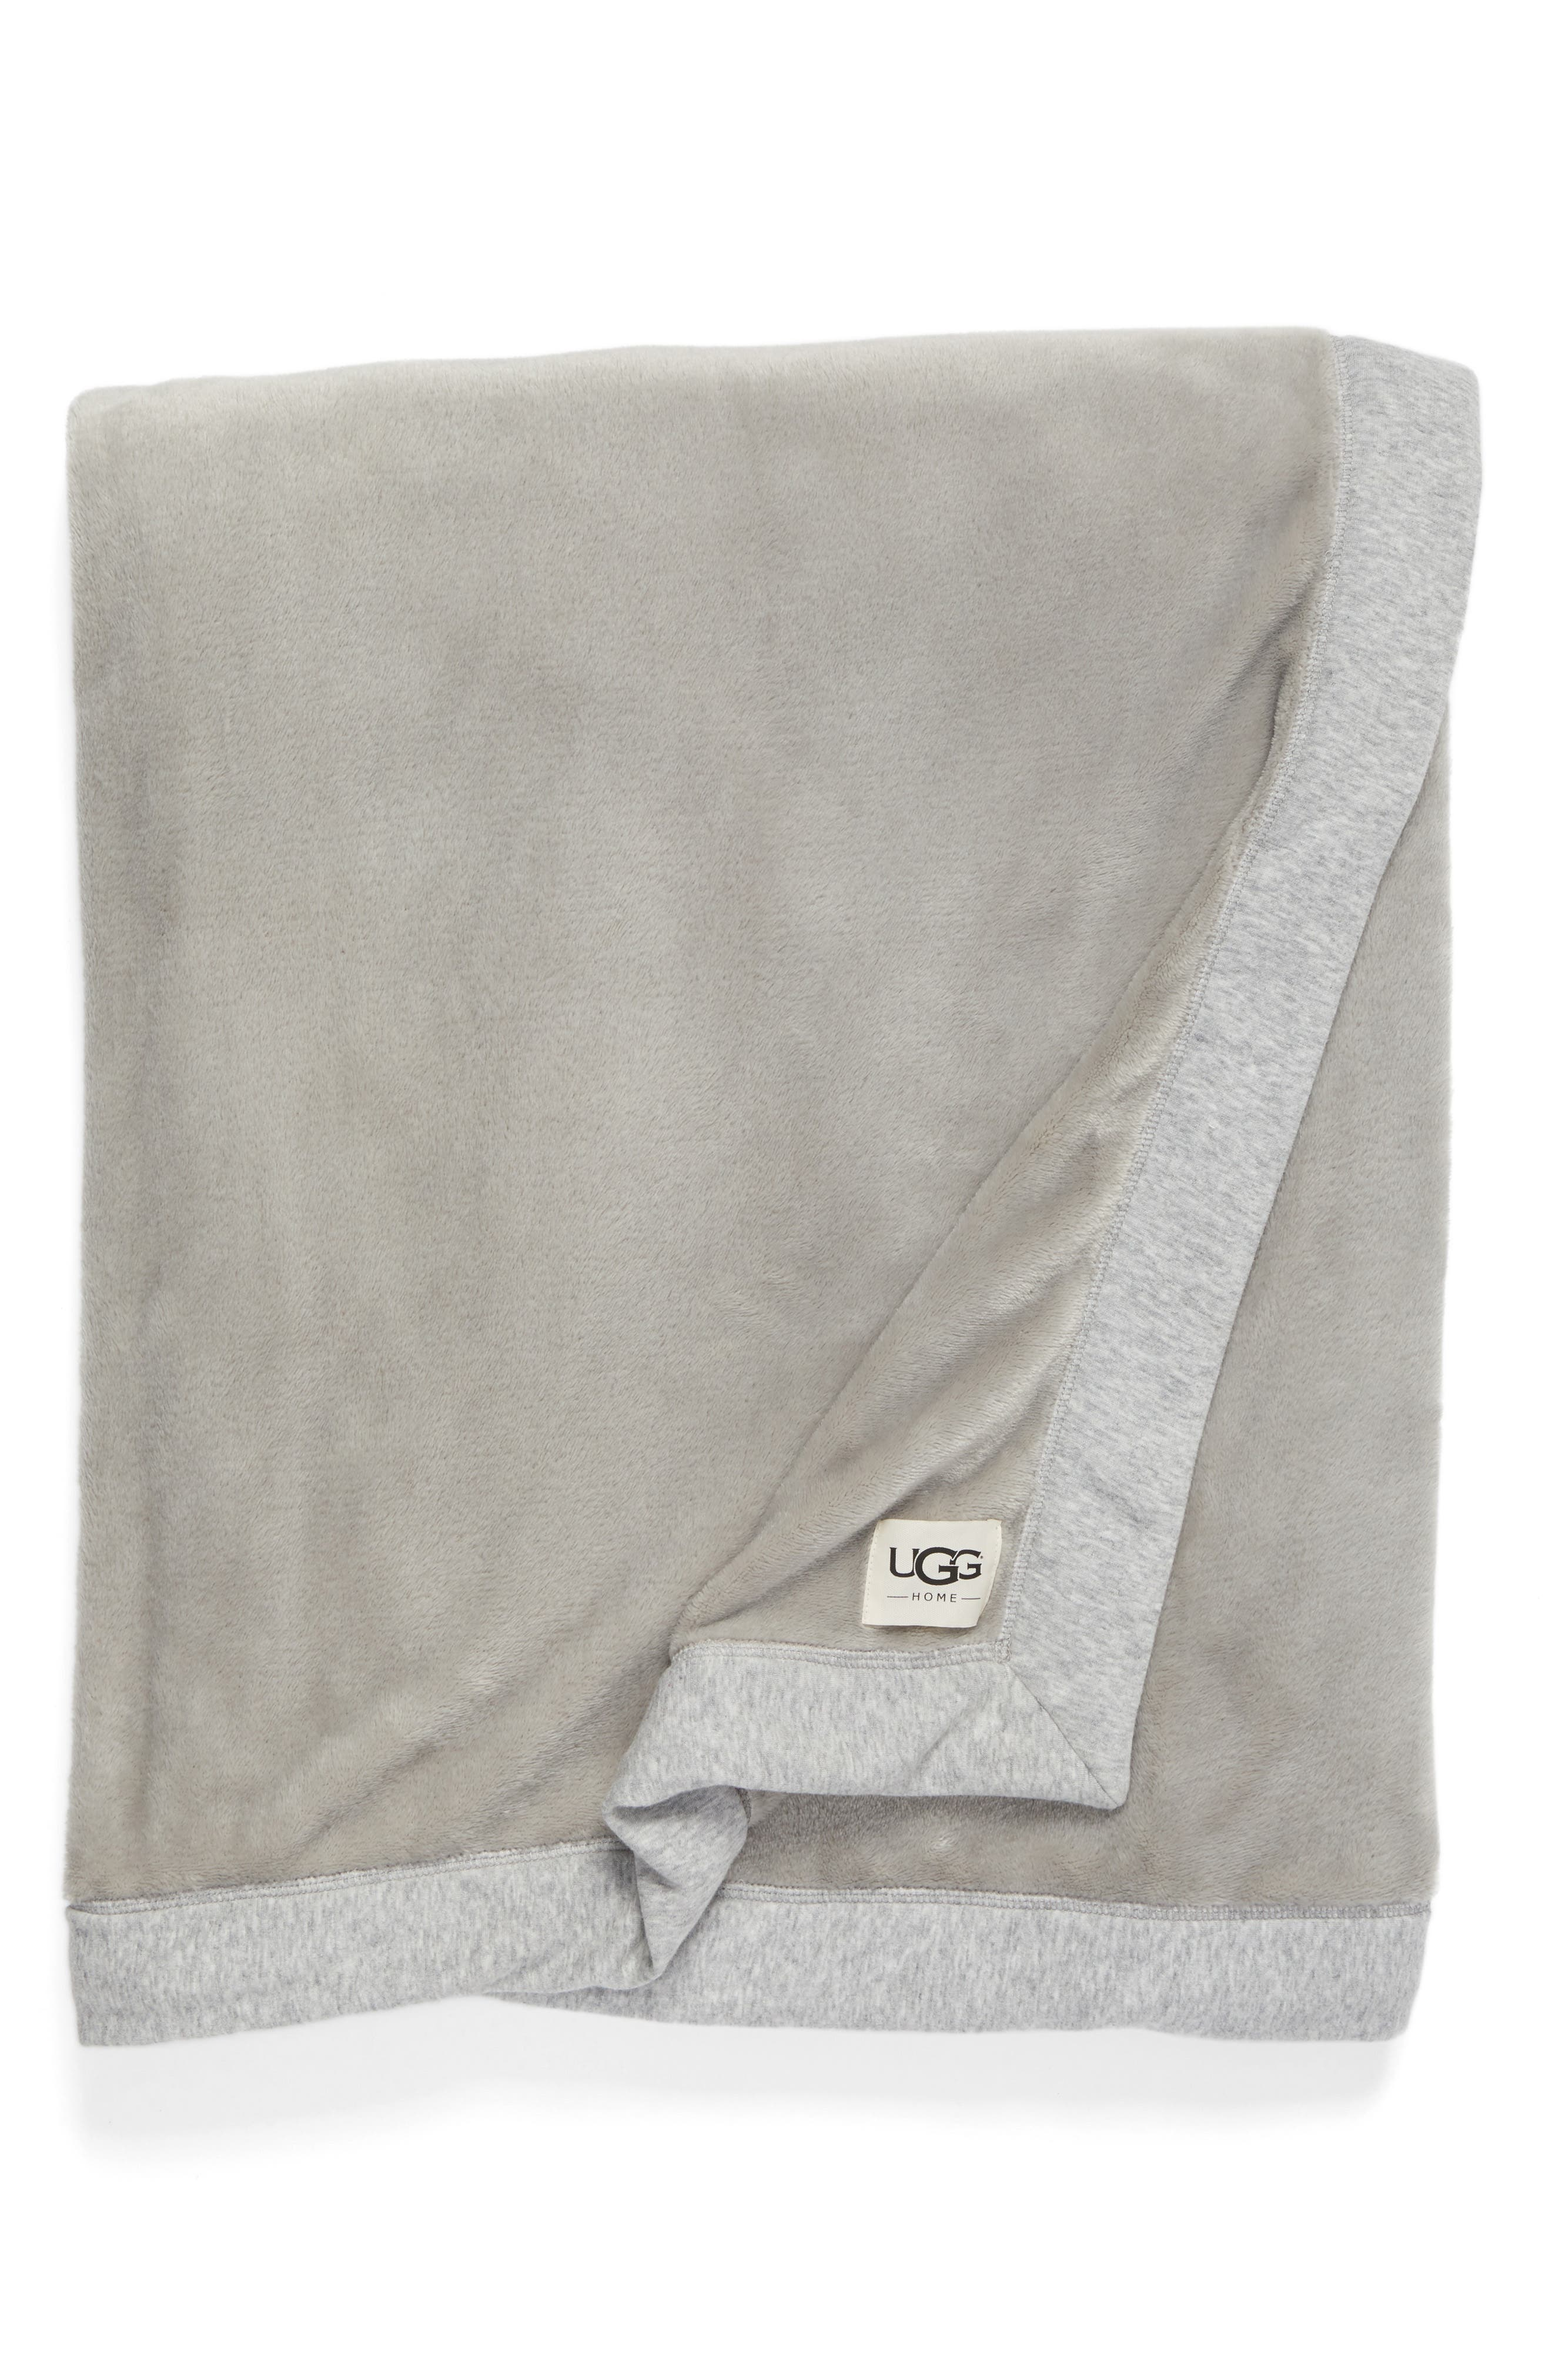 UGG<SUP>®</SUP>, Duffield Throw, Main thumbnail 1, color, SEAL HEATHER GREY